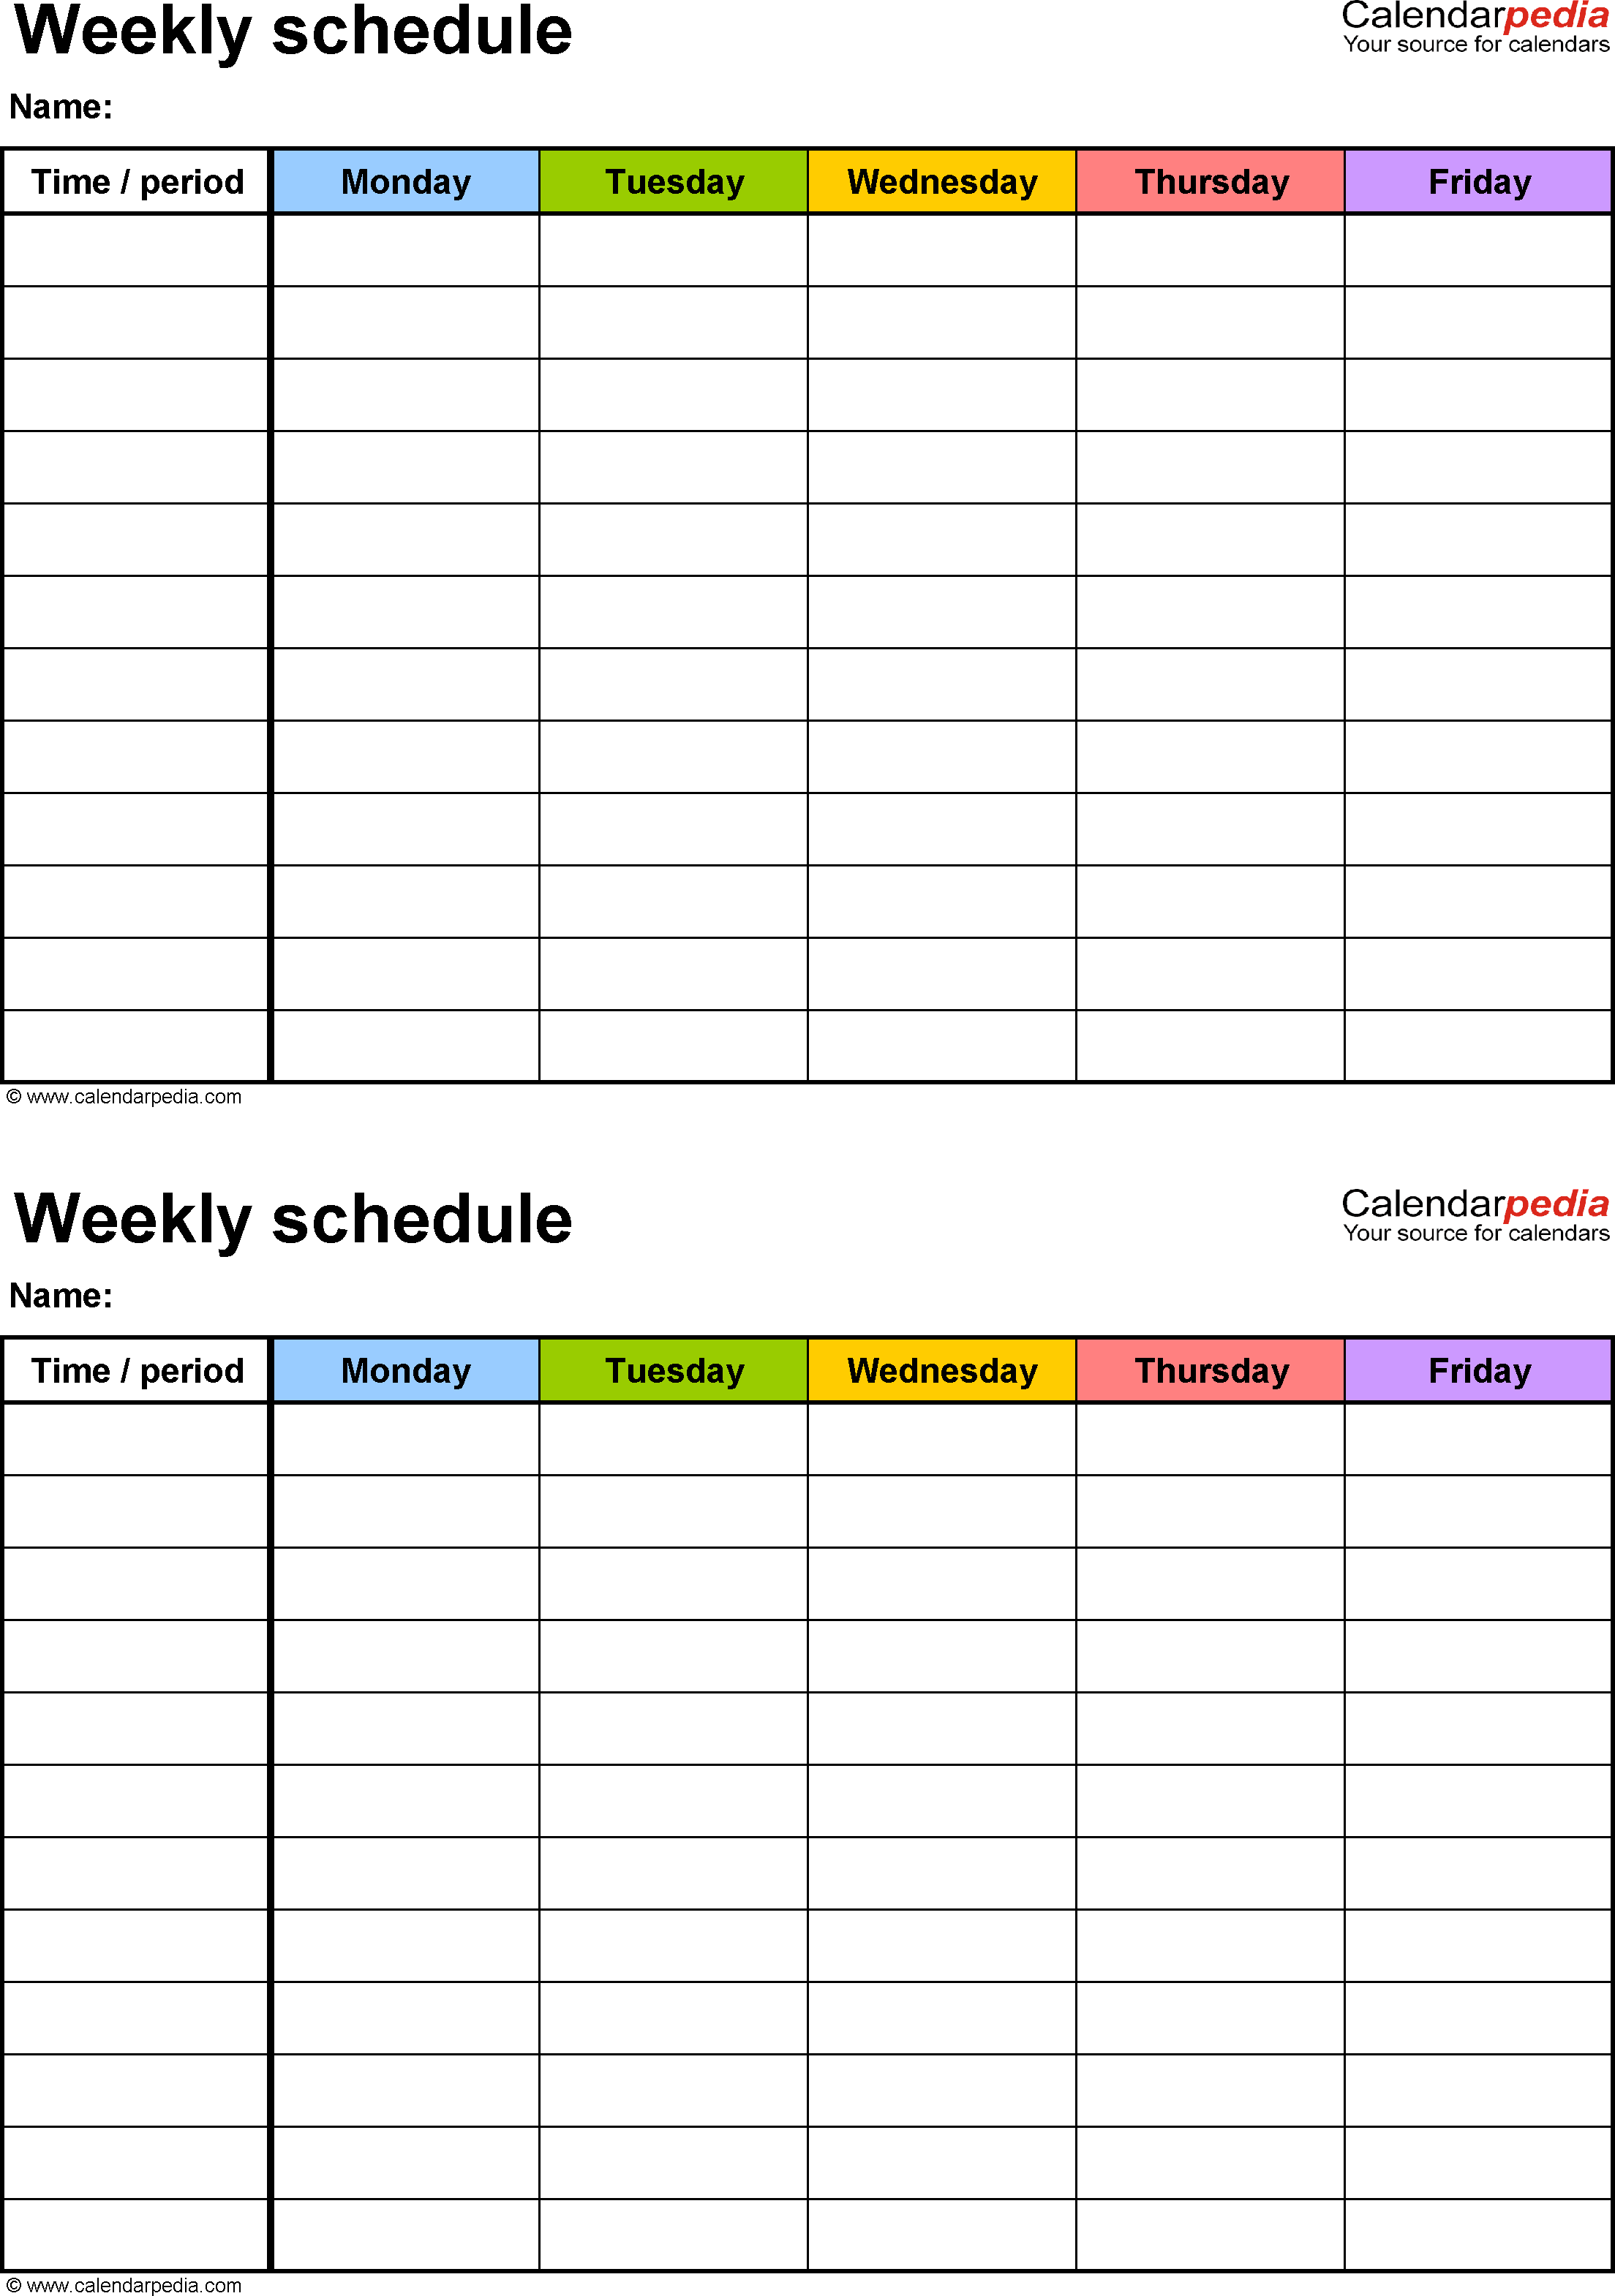 Weekly schedule template for Excel version 3: 2 schedules on one